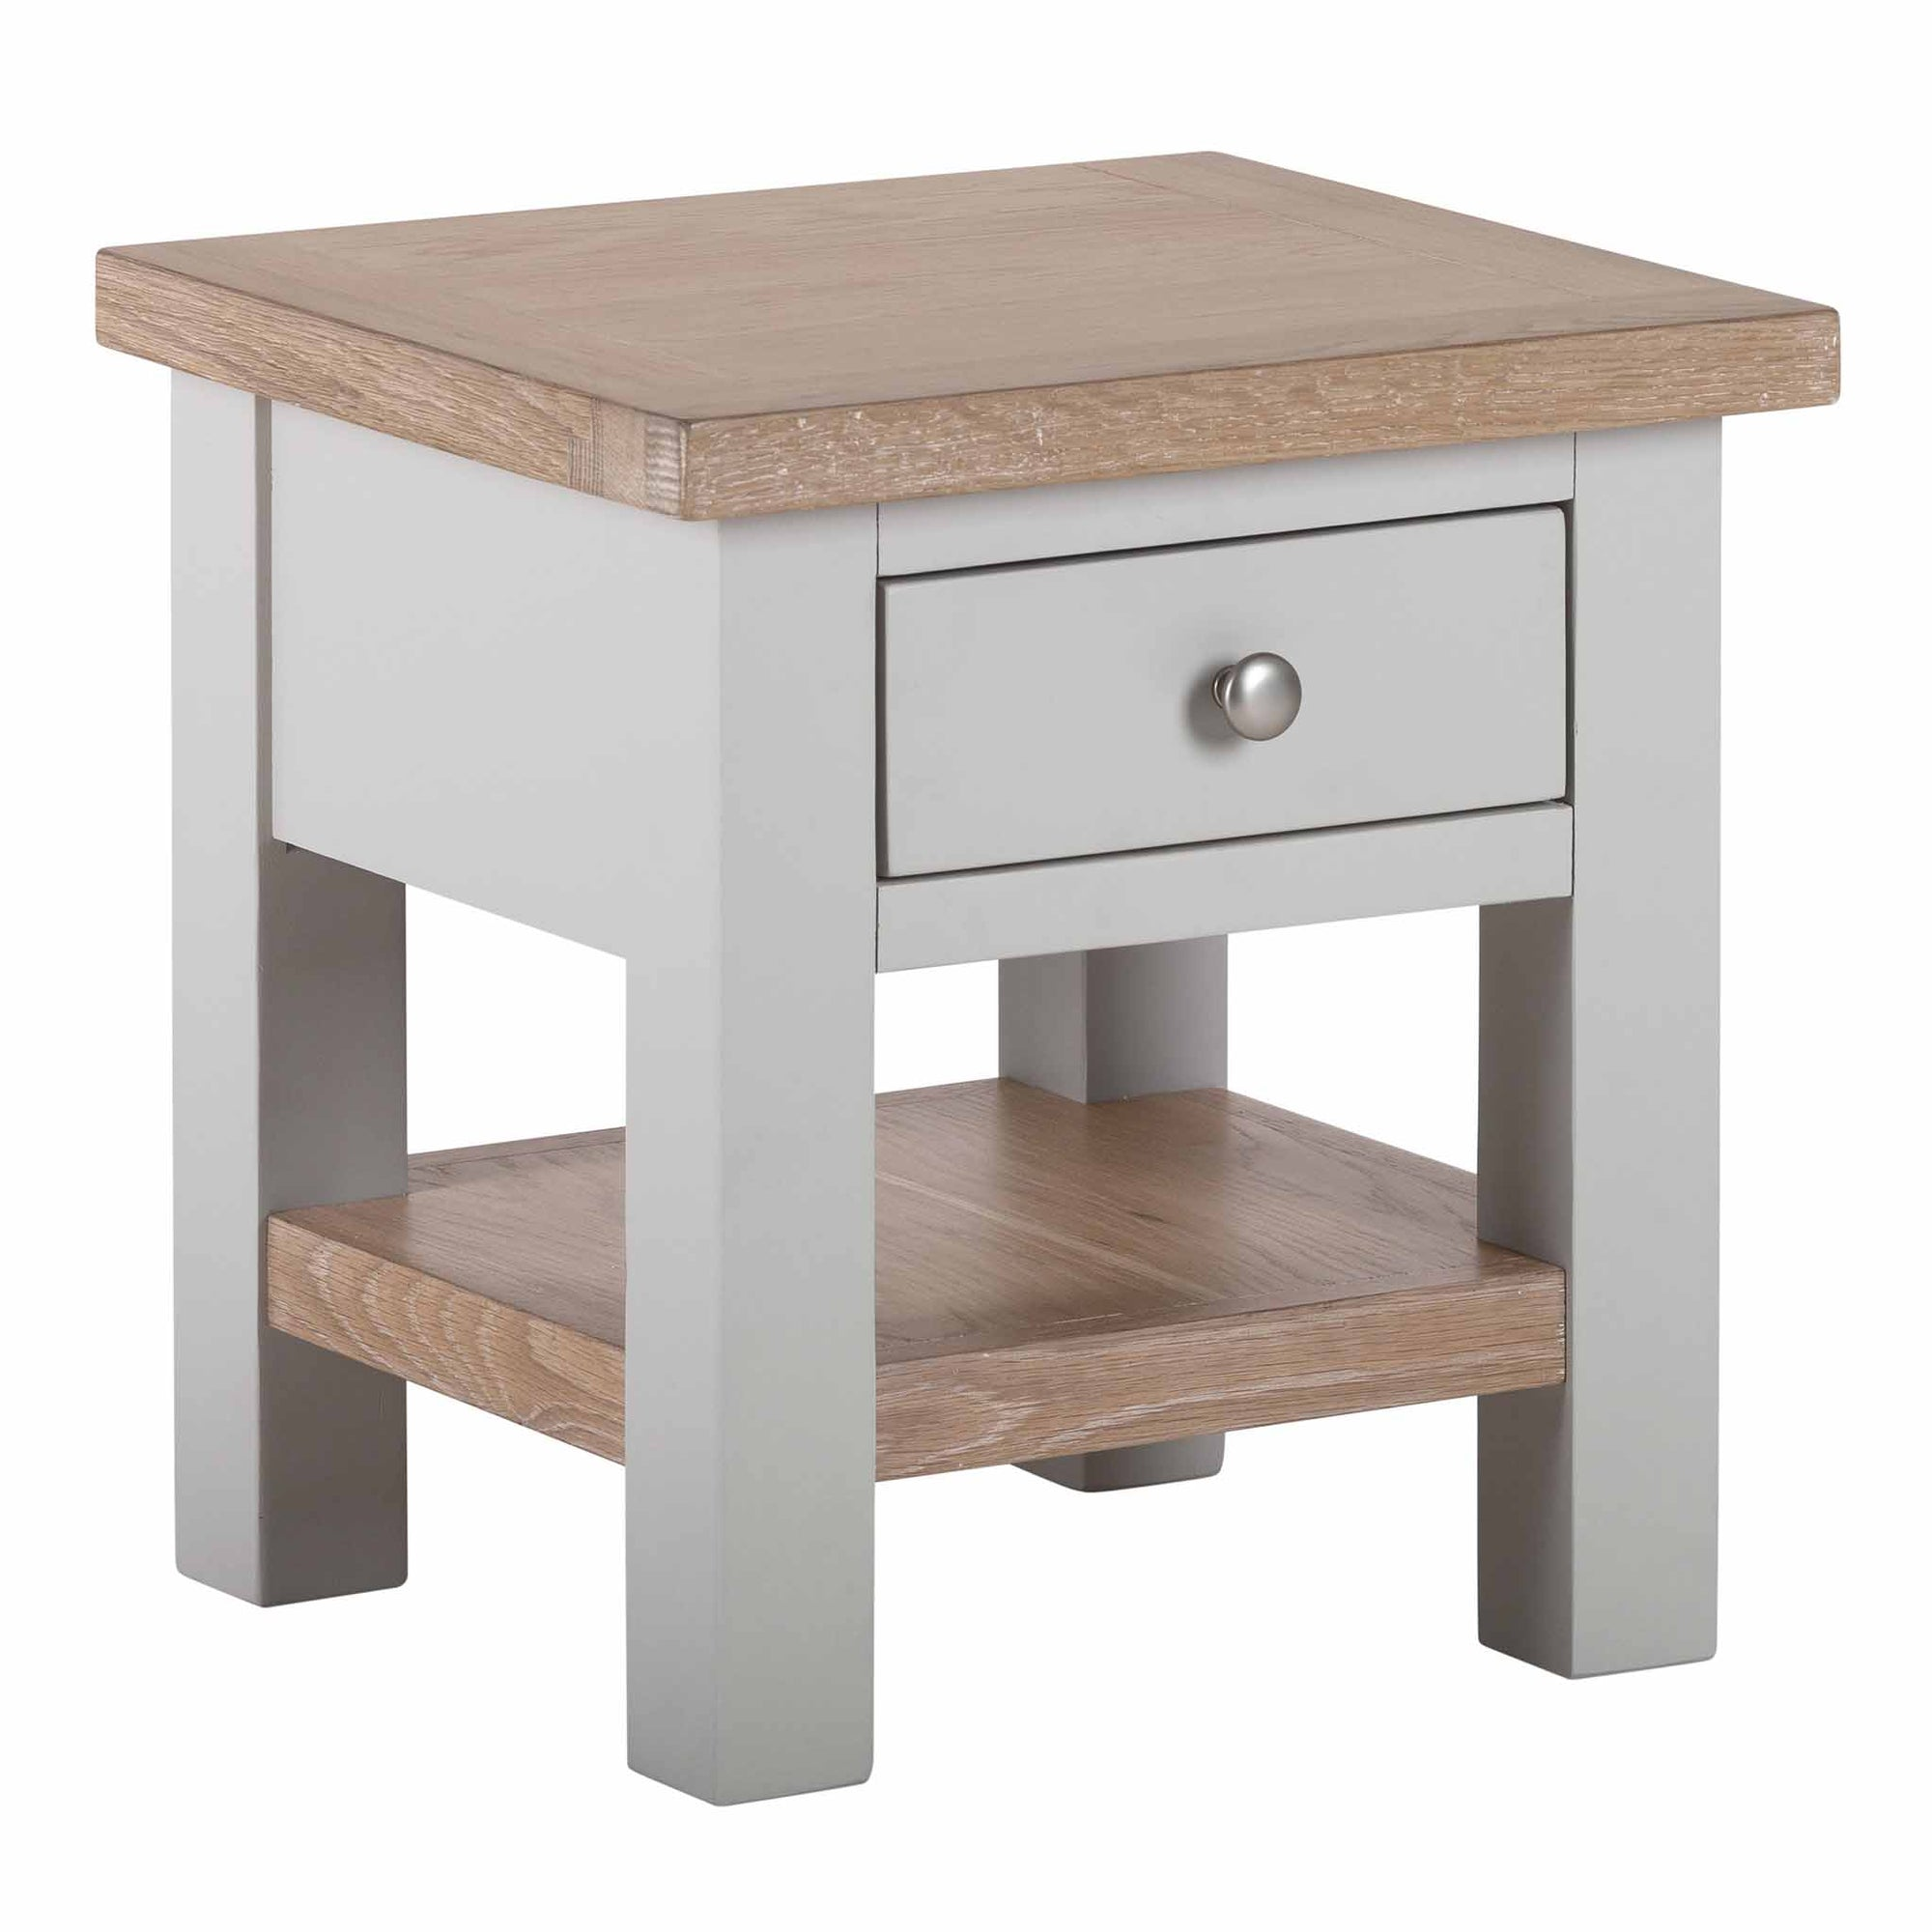 Charlestown Grey Lamp Table with Oak Top from Roseland Furniture